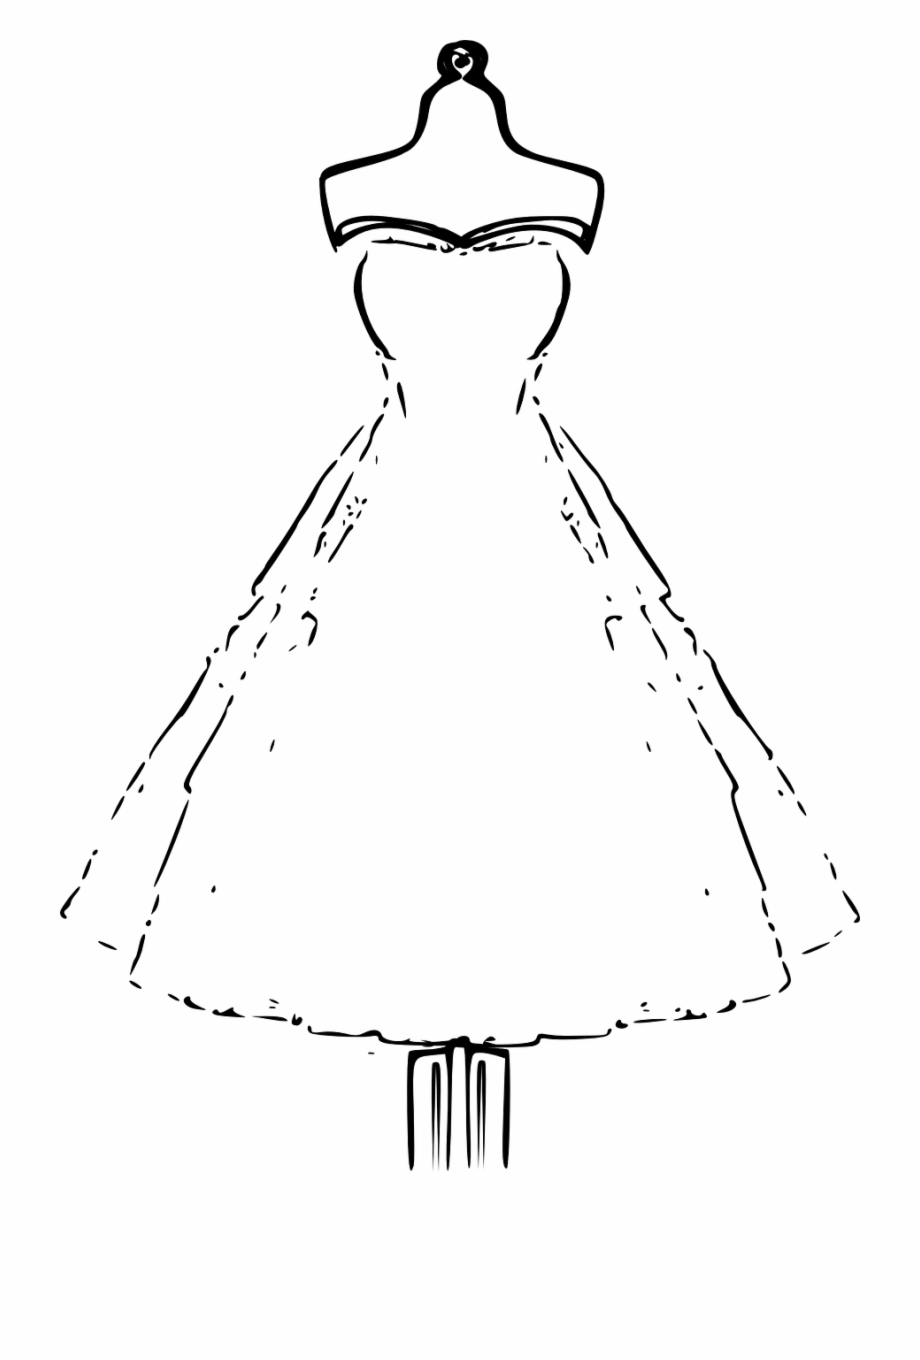 Clipart black and white dress jpg freeuse library Bridal Dress Mannequin Wedding Png Image - Black And White Dresses ... jpg freeuse library